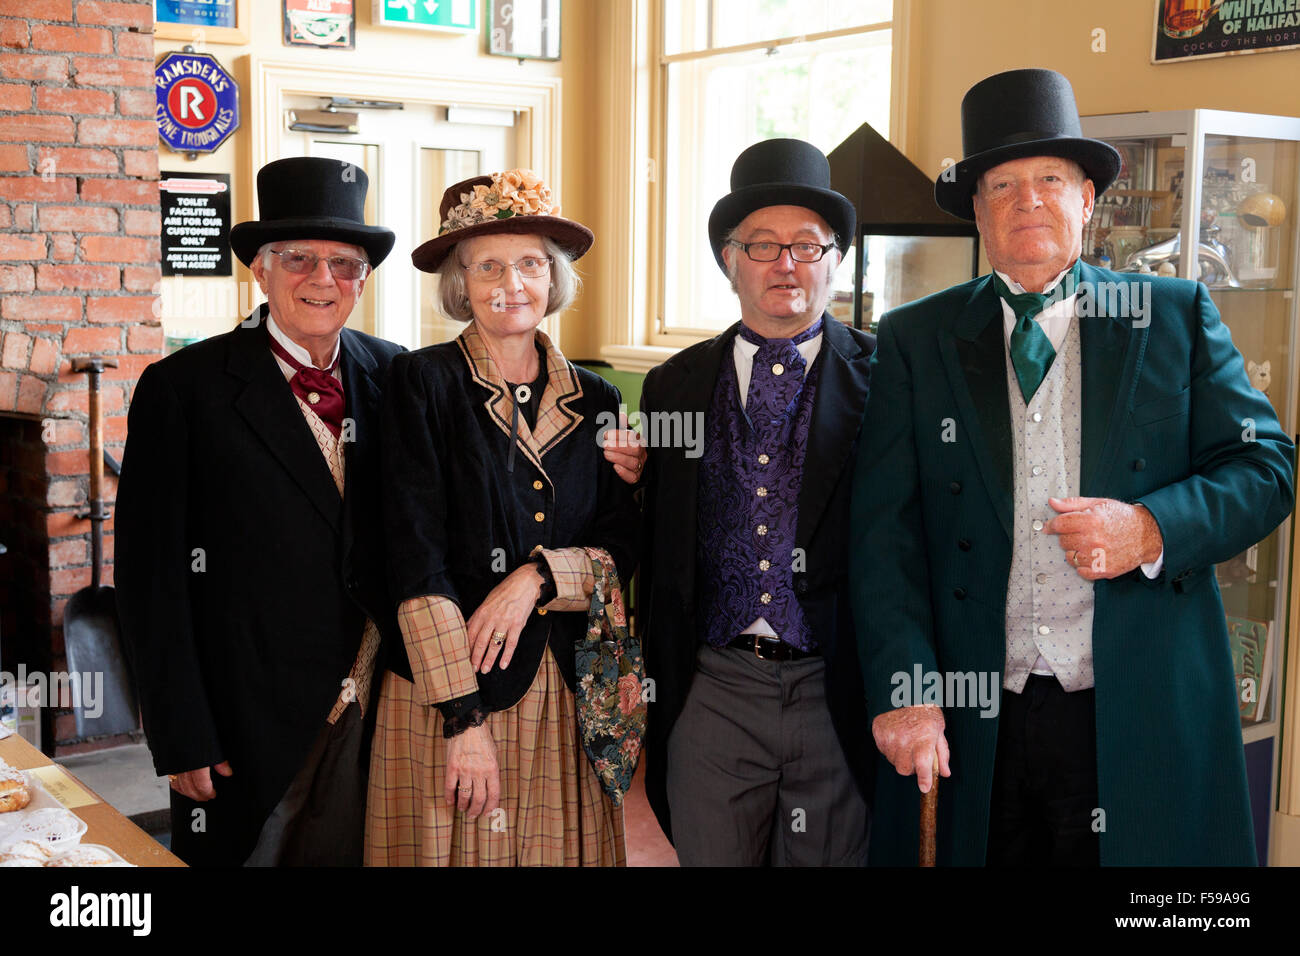 the-friends-of-sowerby-bridge-railway-station-celebrating-the-175th-F59A9G.jpg